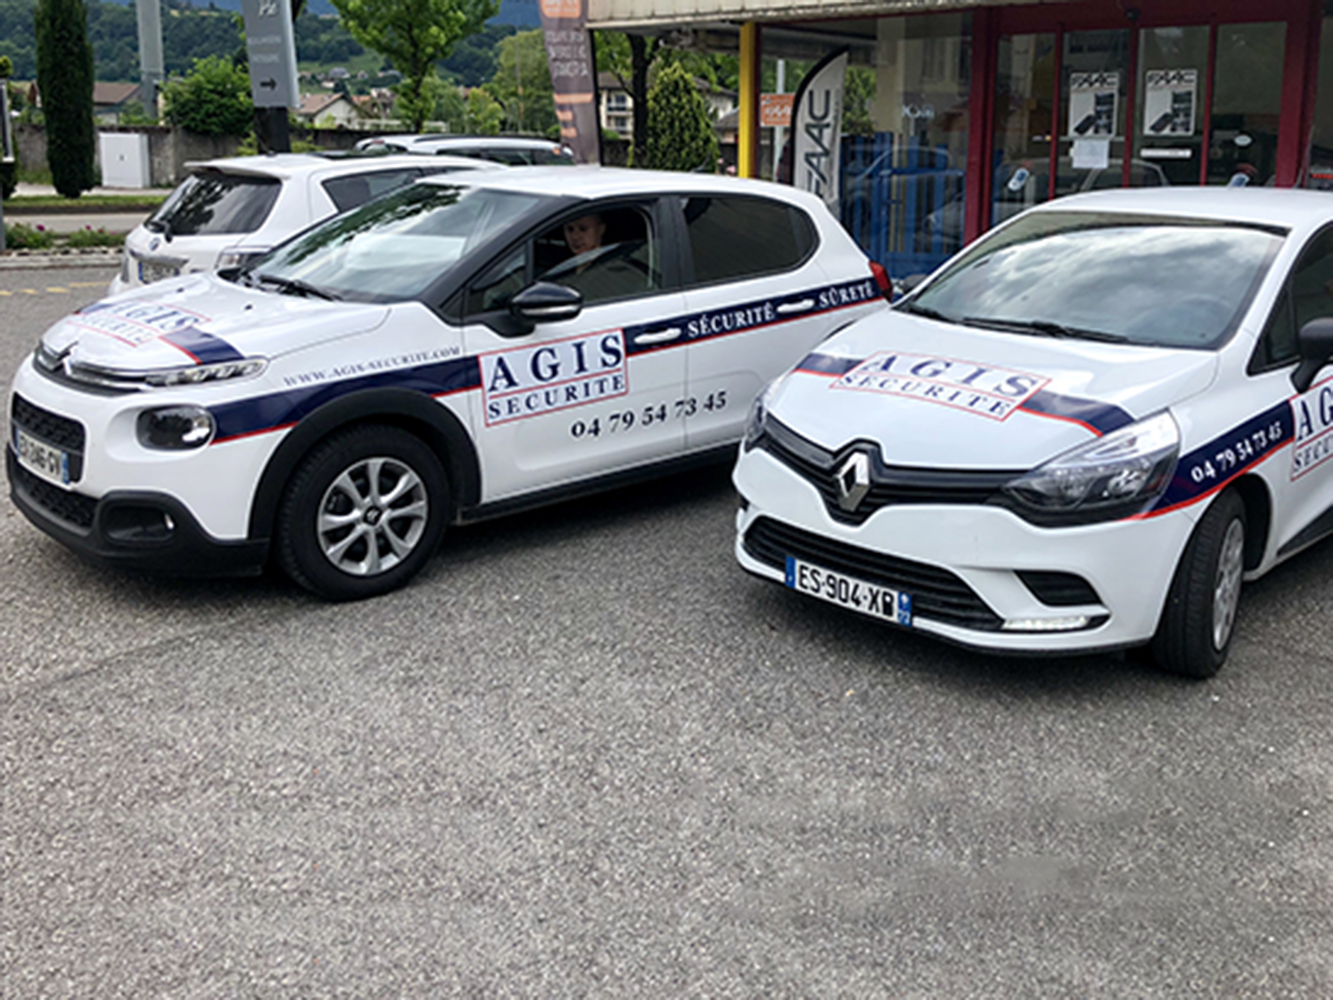 AGIS Securite - Vehicules intervention (